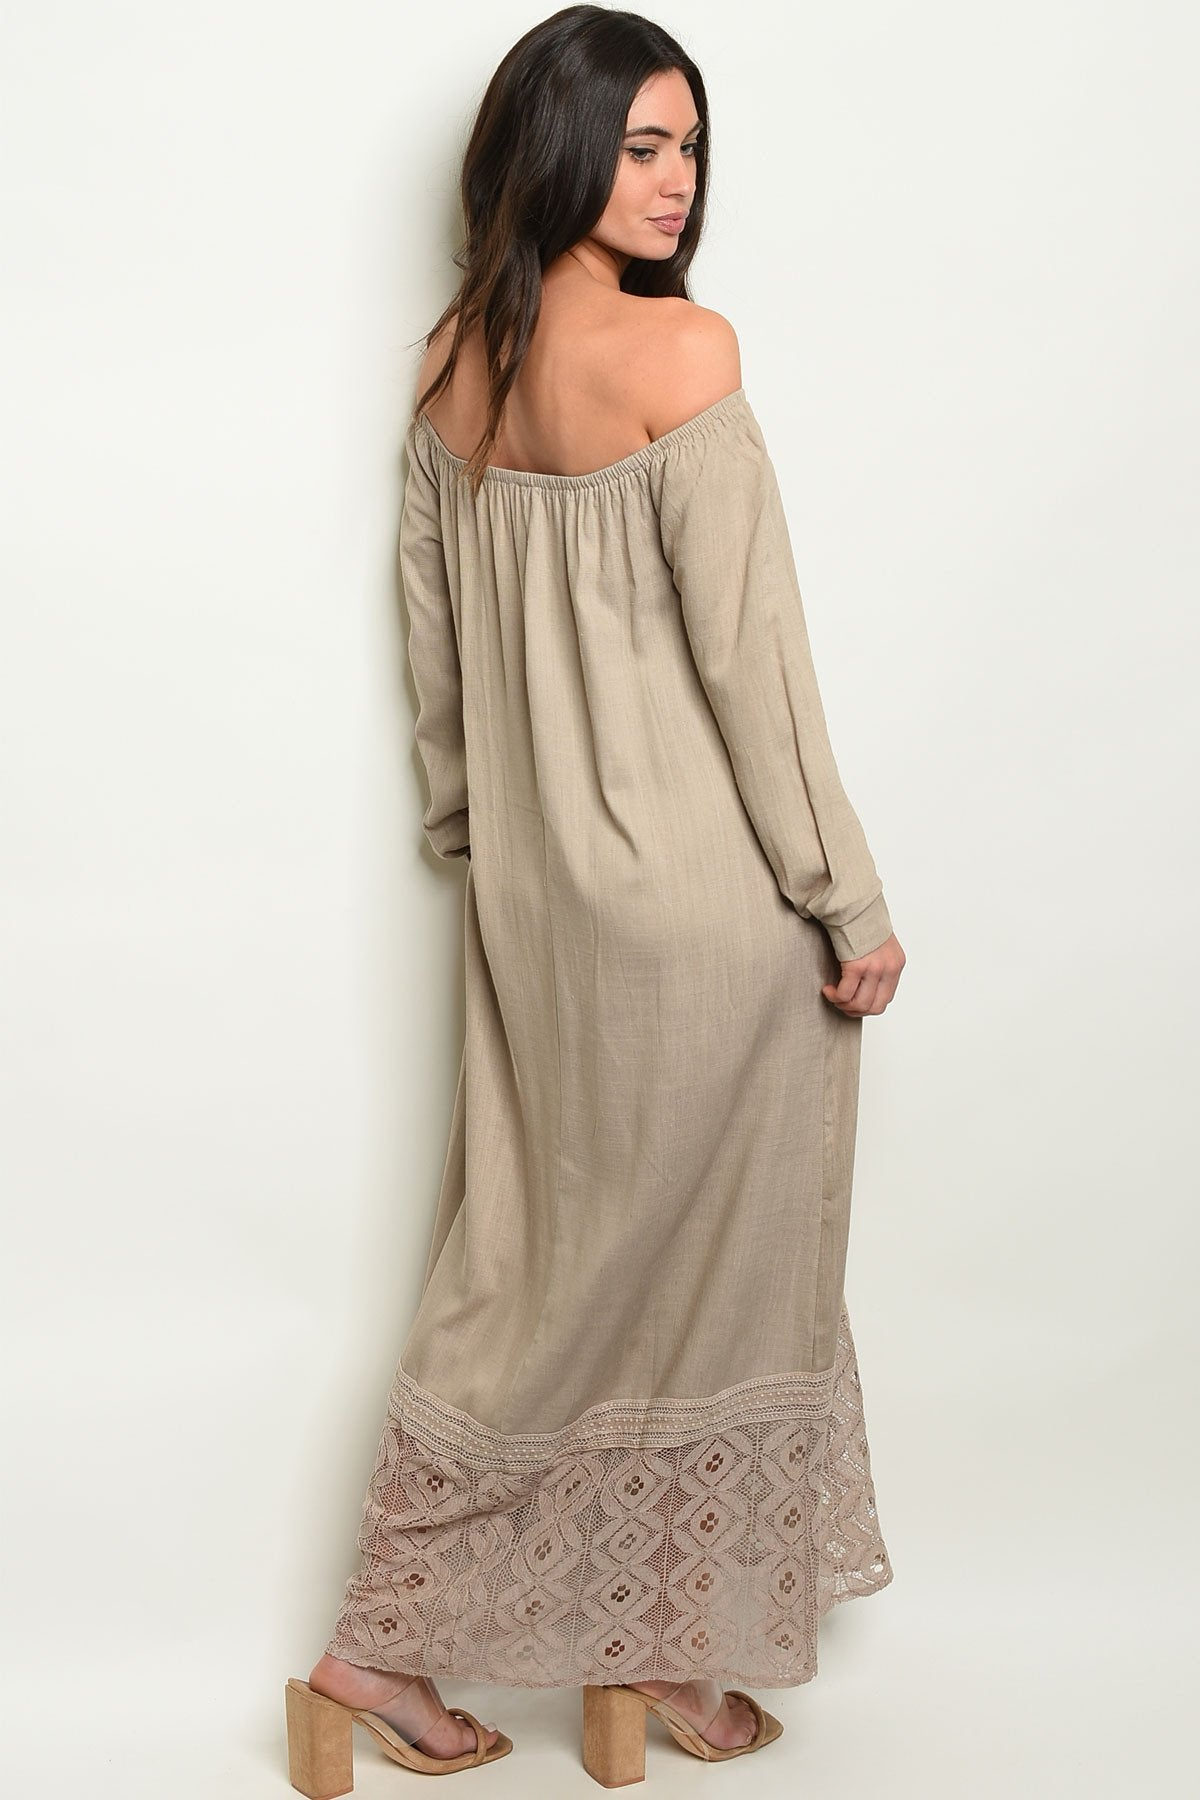 Taupe Dress - Manifest Best Boutique